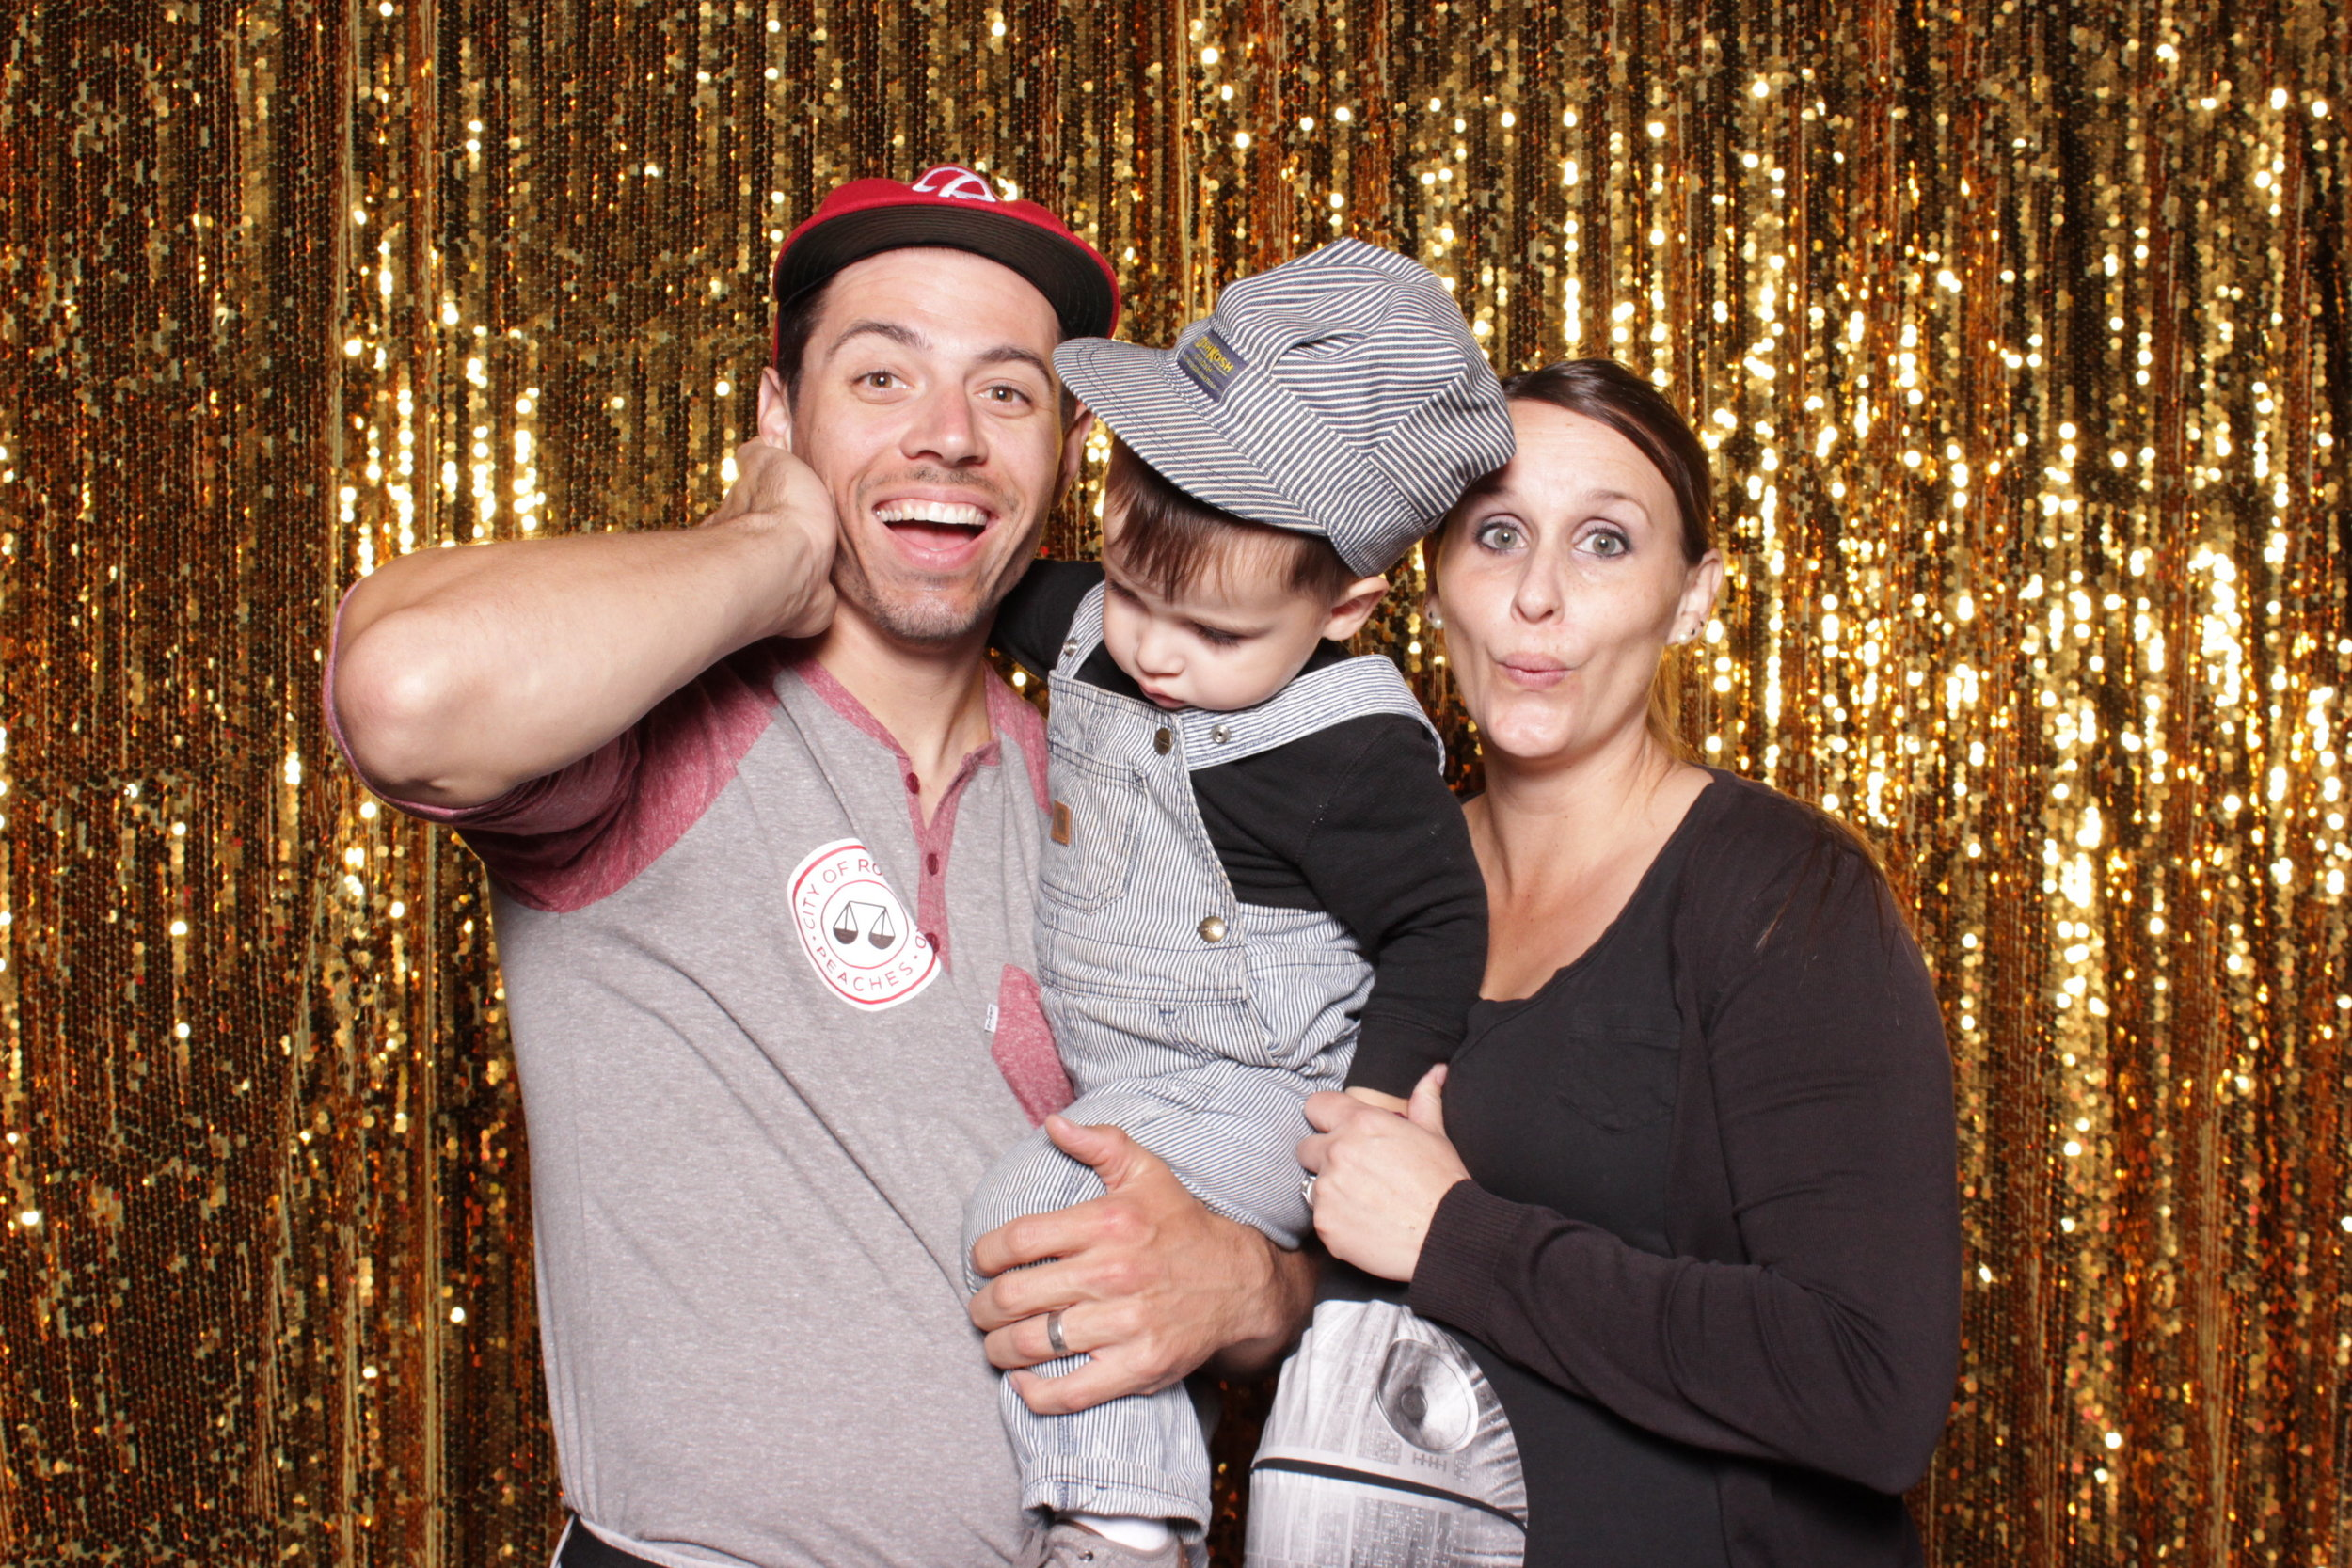 Chico-photo-booth-rental-simple